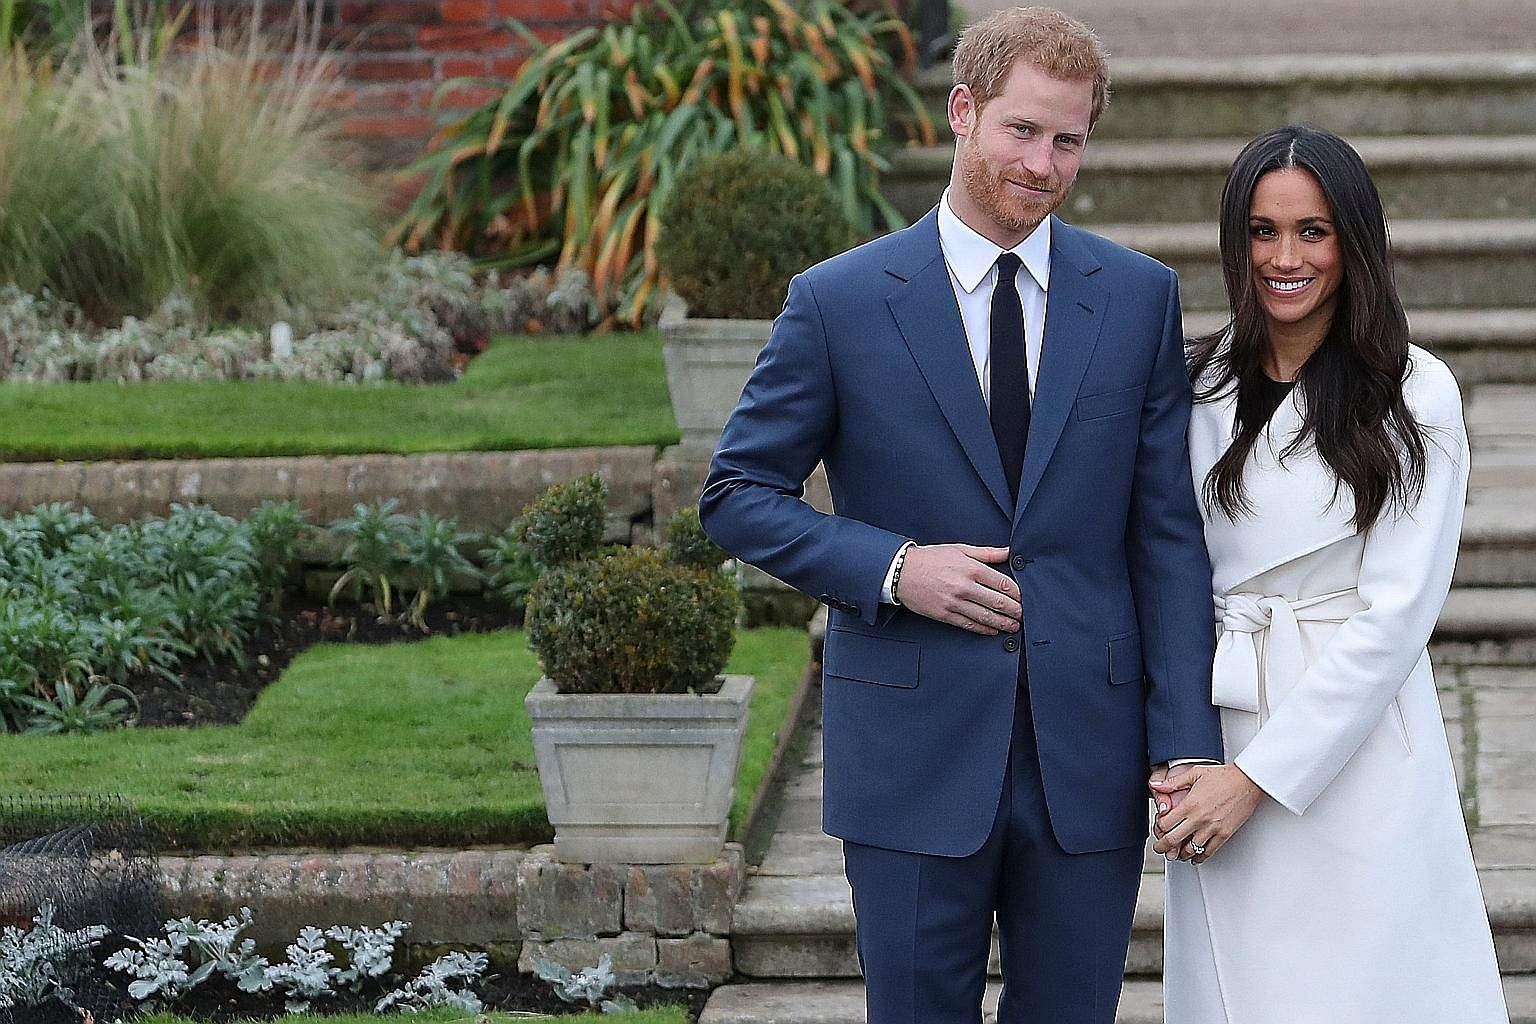 Prince Harry and Ms Meghan Markle at Kensington Palace after the announcement of their engagement on Monday. The engagement is only the latest chapter in the modernisation of the British monarchy.